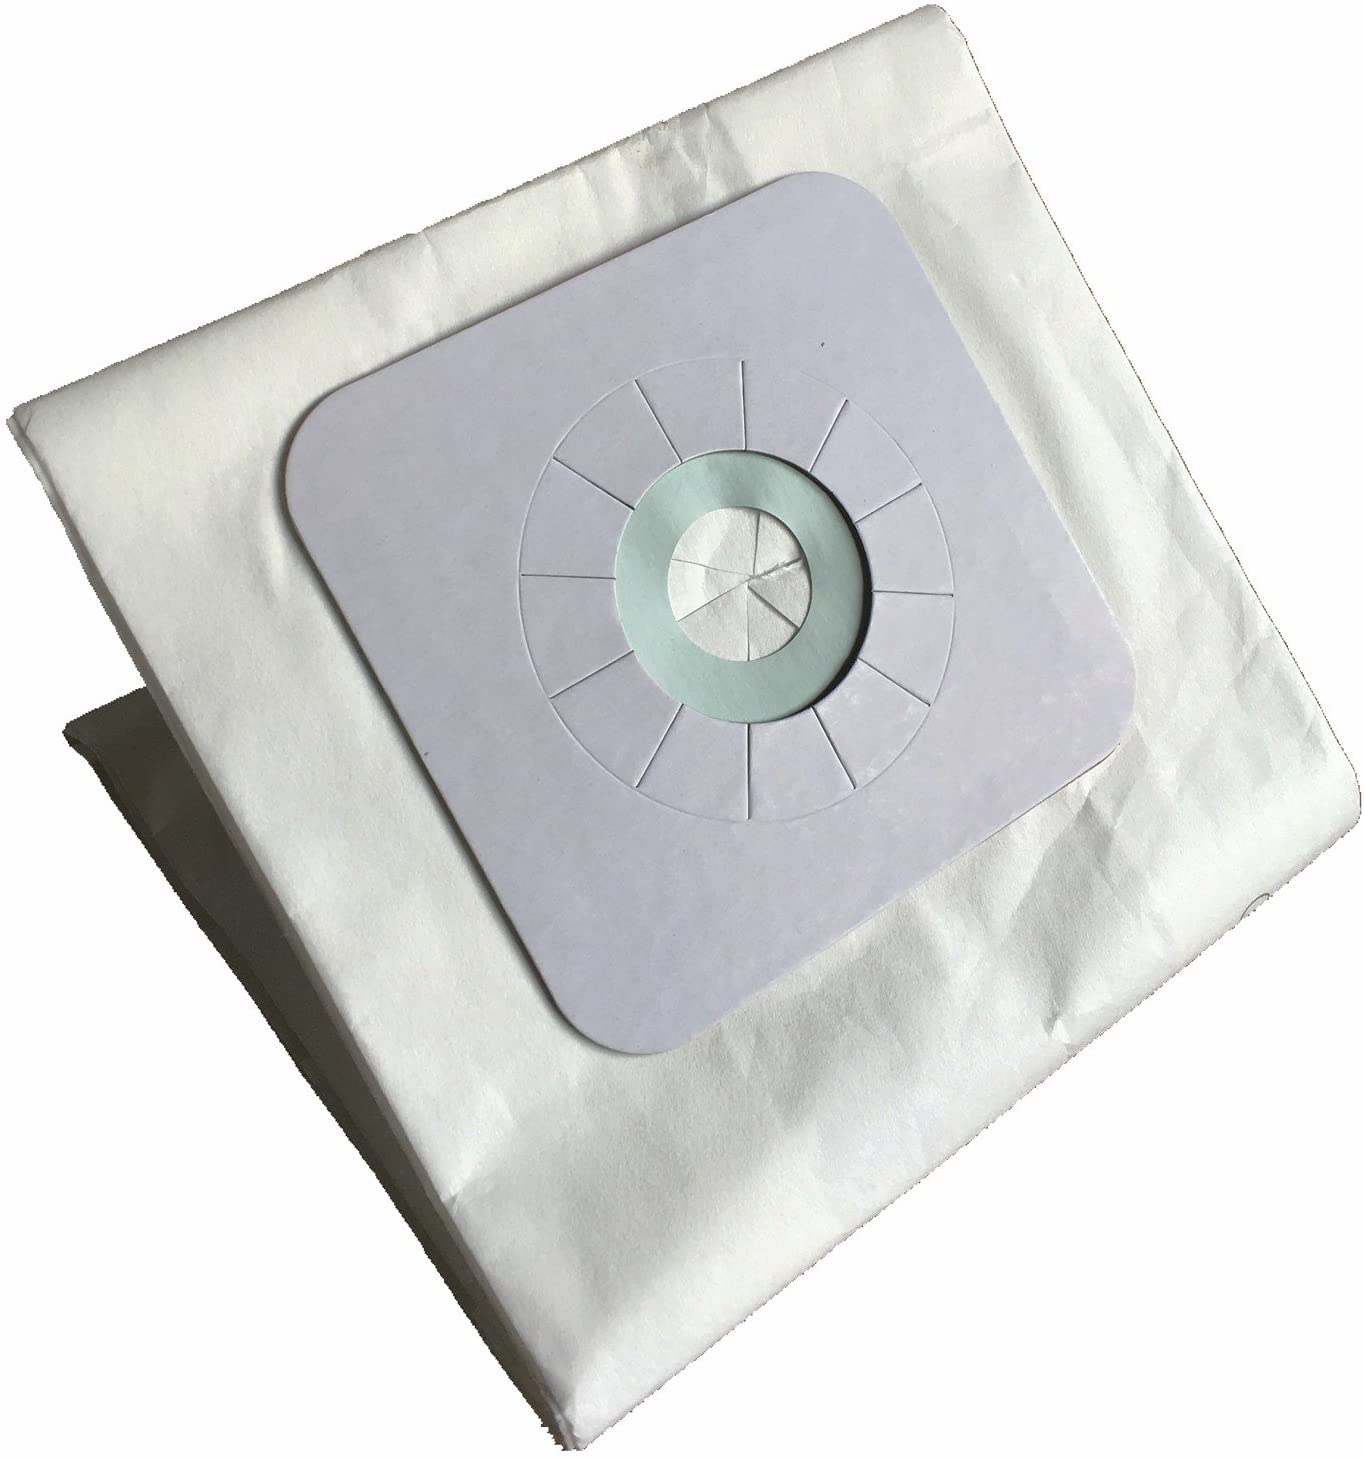 CF Clean Fairy 9pack 391 Central Vacuum Bags can be Used for Nutone 391 CV353, CV450, CV391, CV400, CV350,CV351 VX475 44186, CV352,CV653 CV750, CF3918